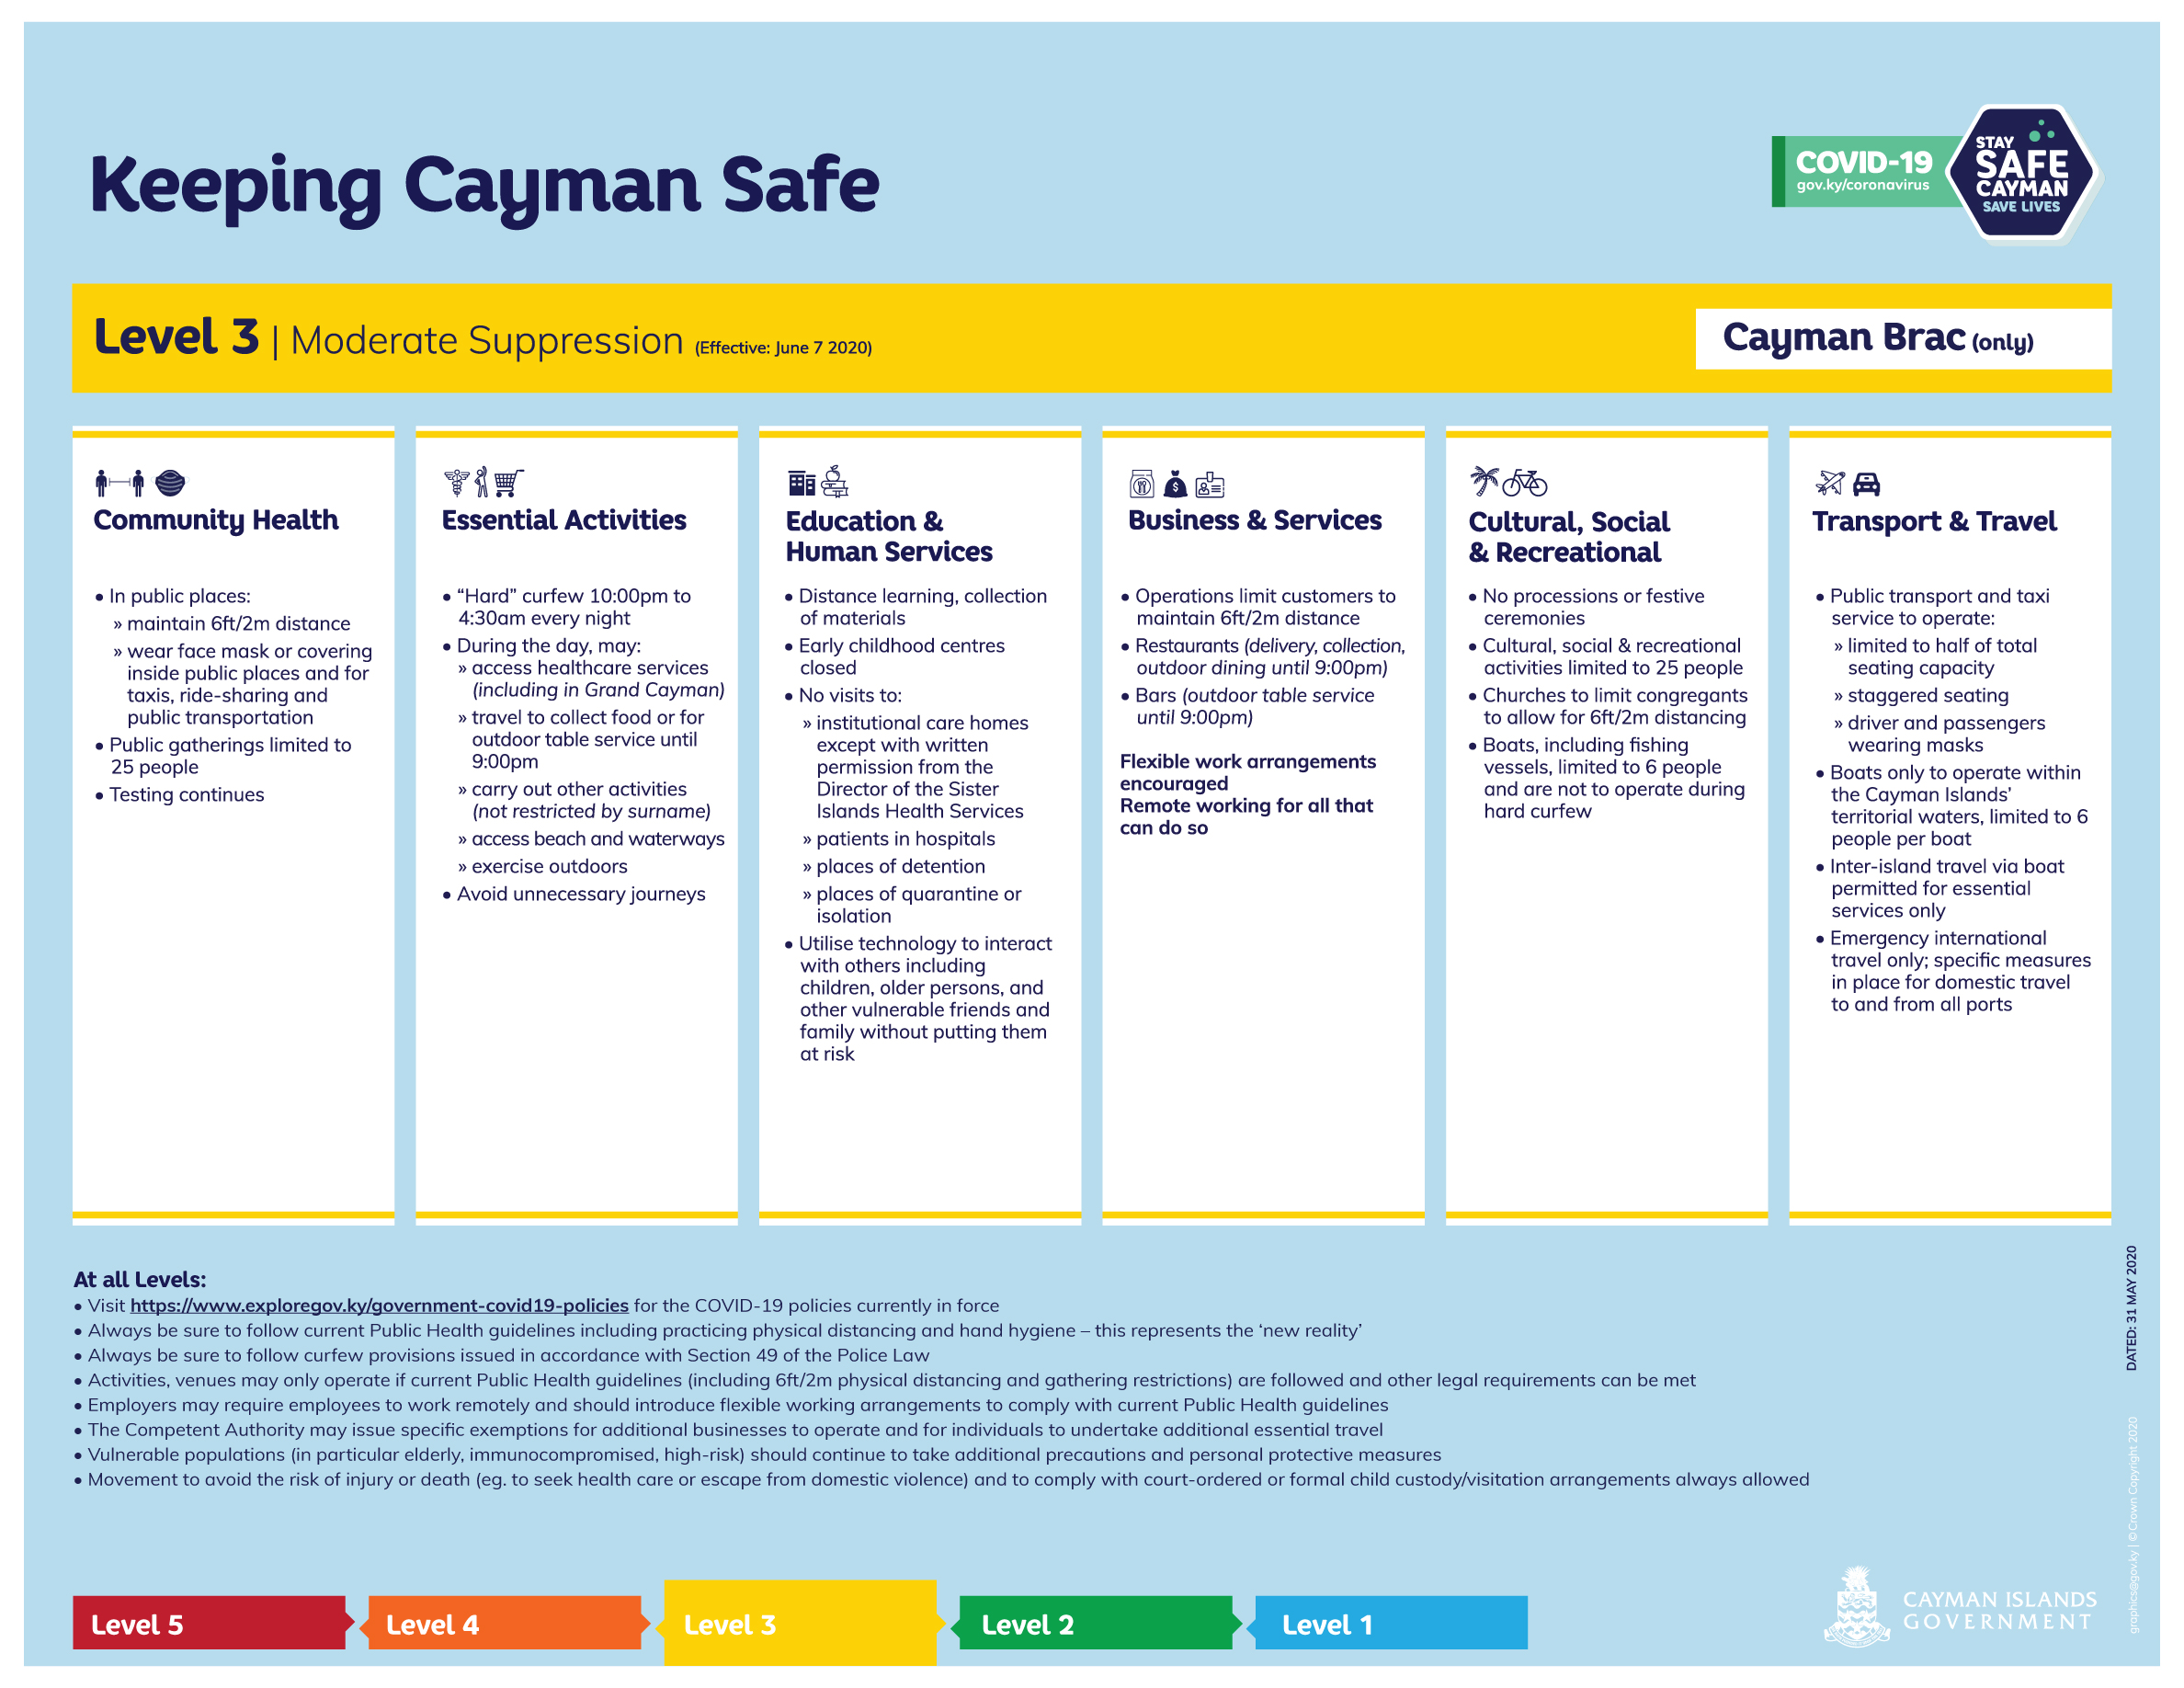 Keeping Cayman Safe - Suppression Level 3 - Cayman Brac only(Effective June 7 2020)